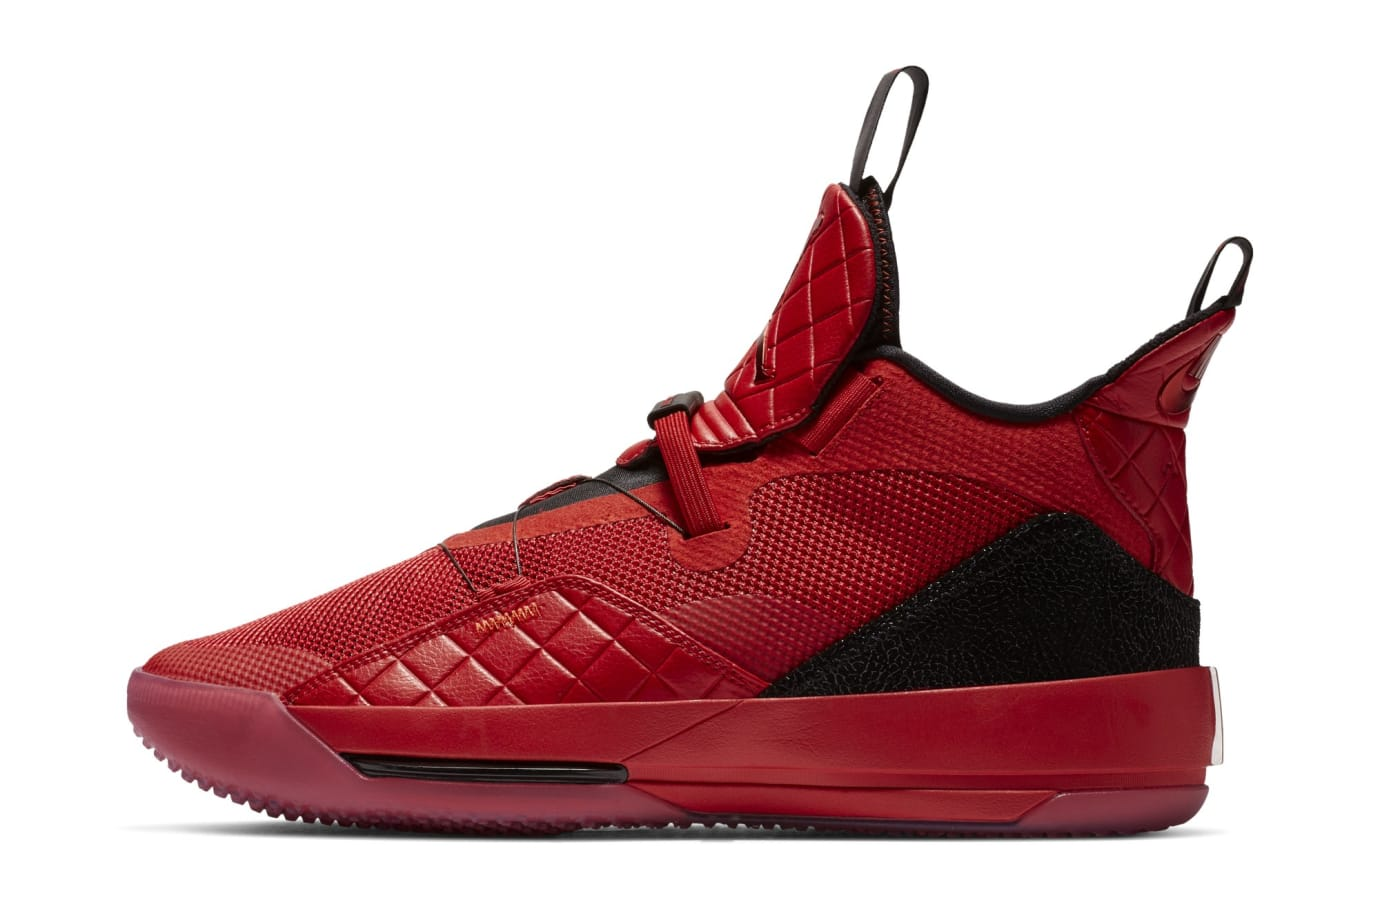 Air Jordan 33 'University Red' AQ8830-600 (Lateral)